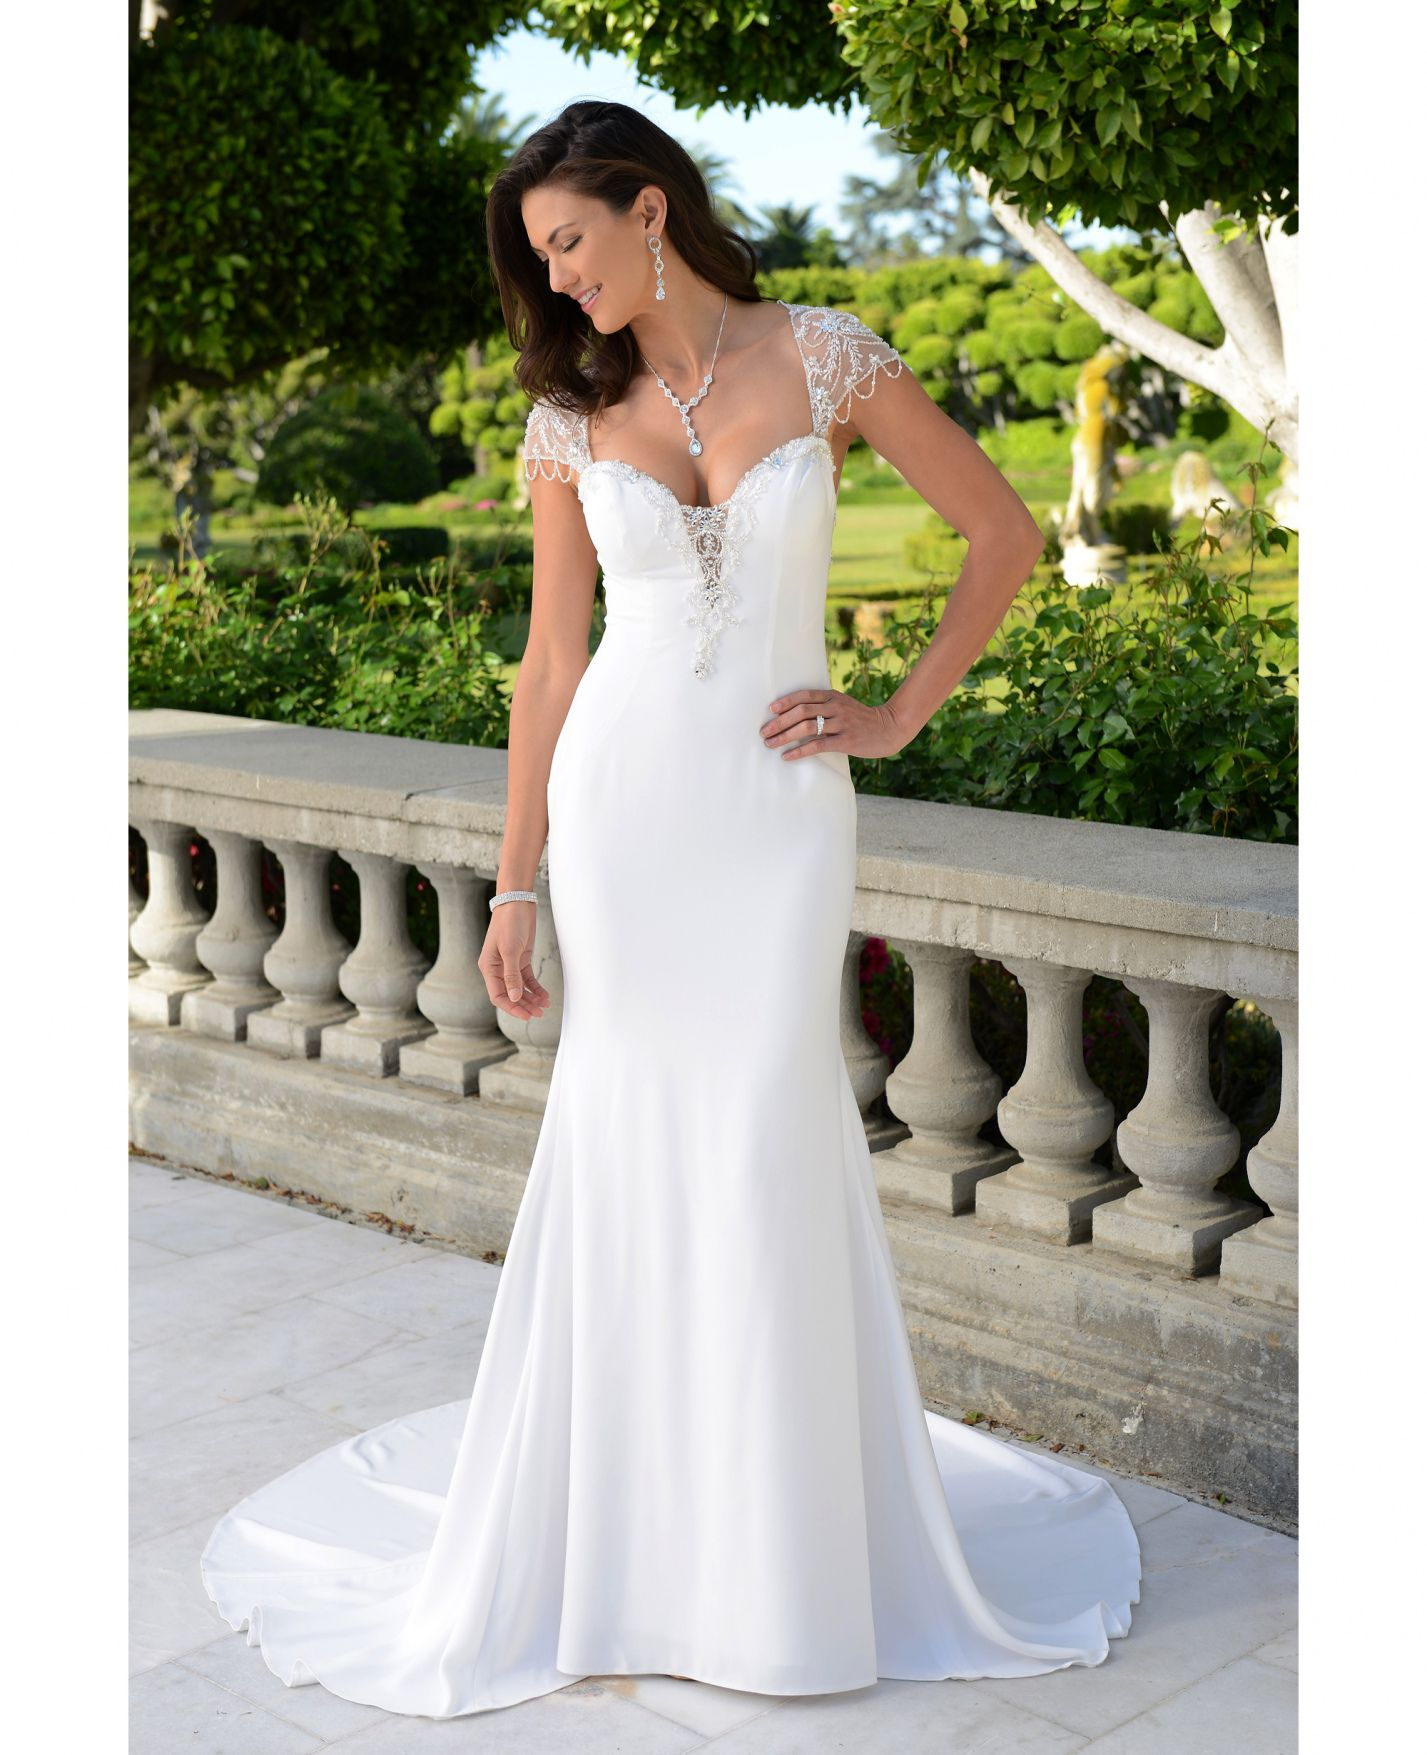 20 consignment wedding dresses san diego dress for country